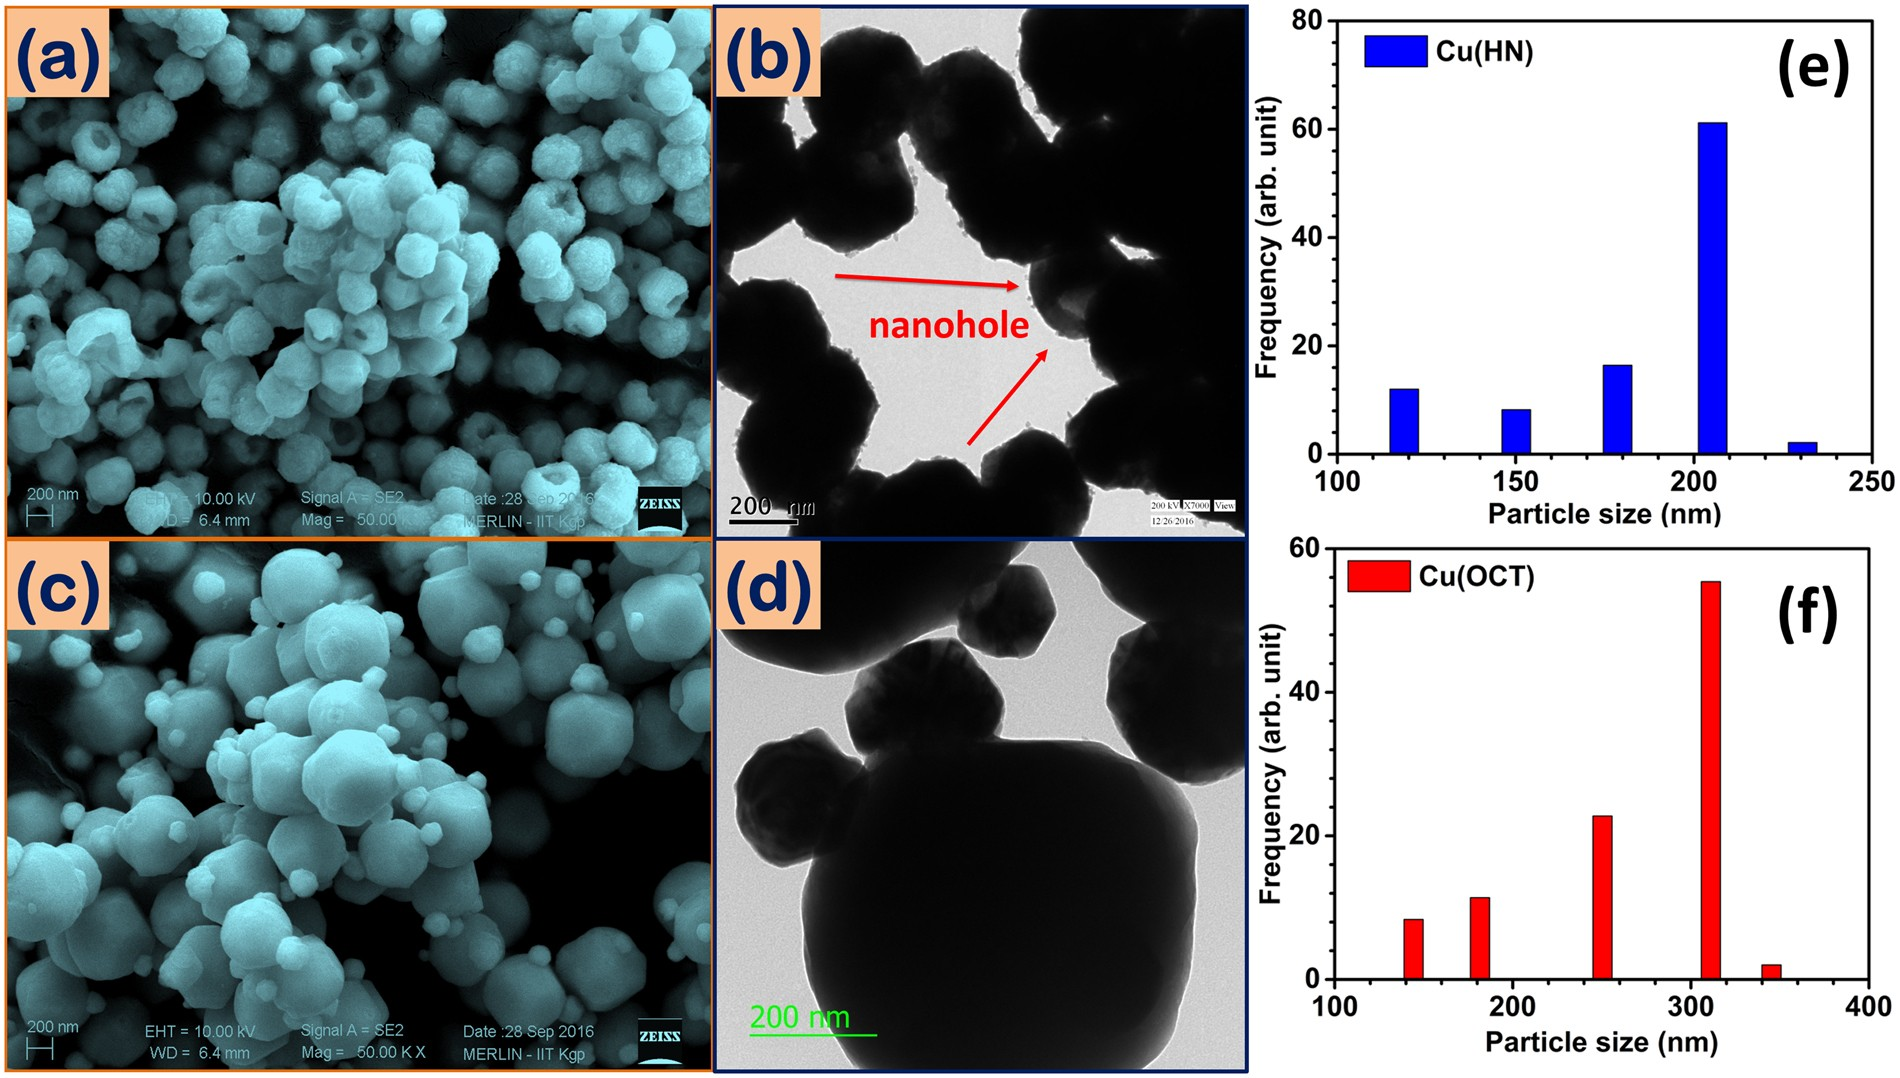 Hollow nanostructures of metal oxides as next generation